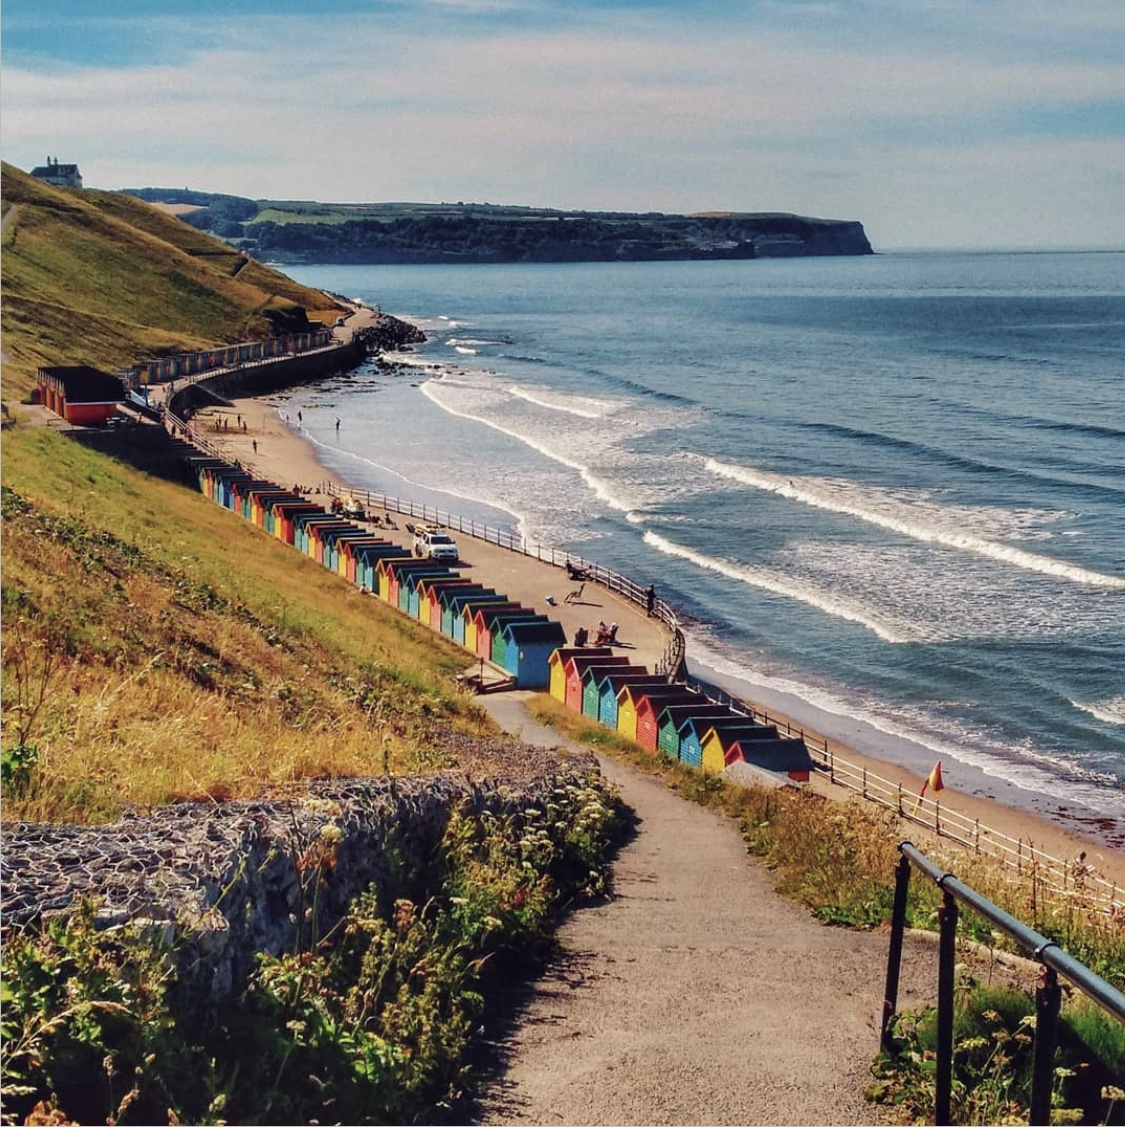 📍Whitby, North Yorkshire The iconic rainbow beach huts lining the West Beach of Whitby's coastline. (📸IG/pics_of_a_lonesome_dreamer)